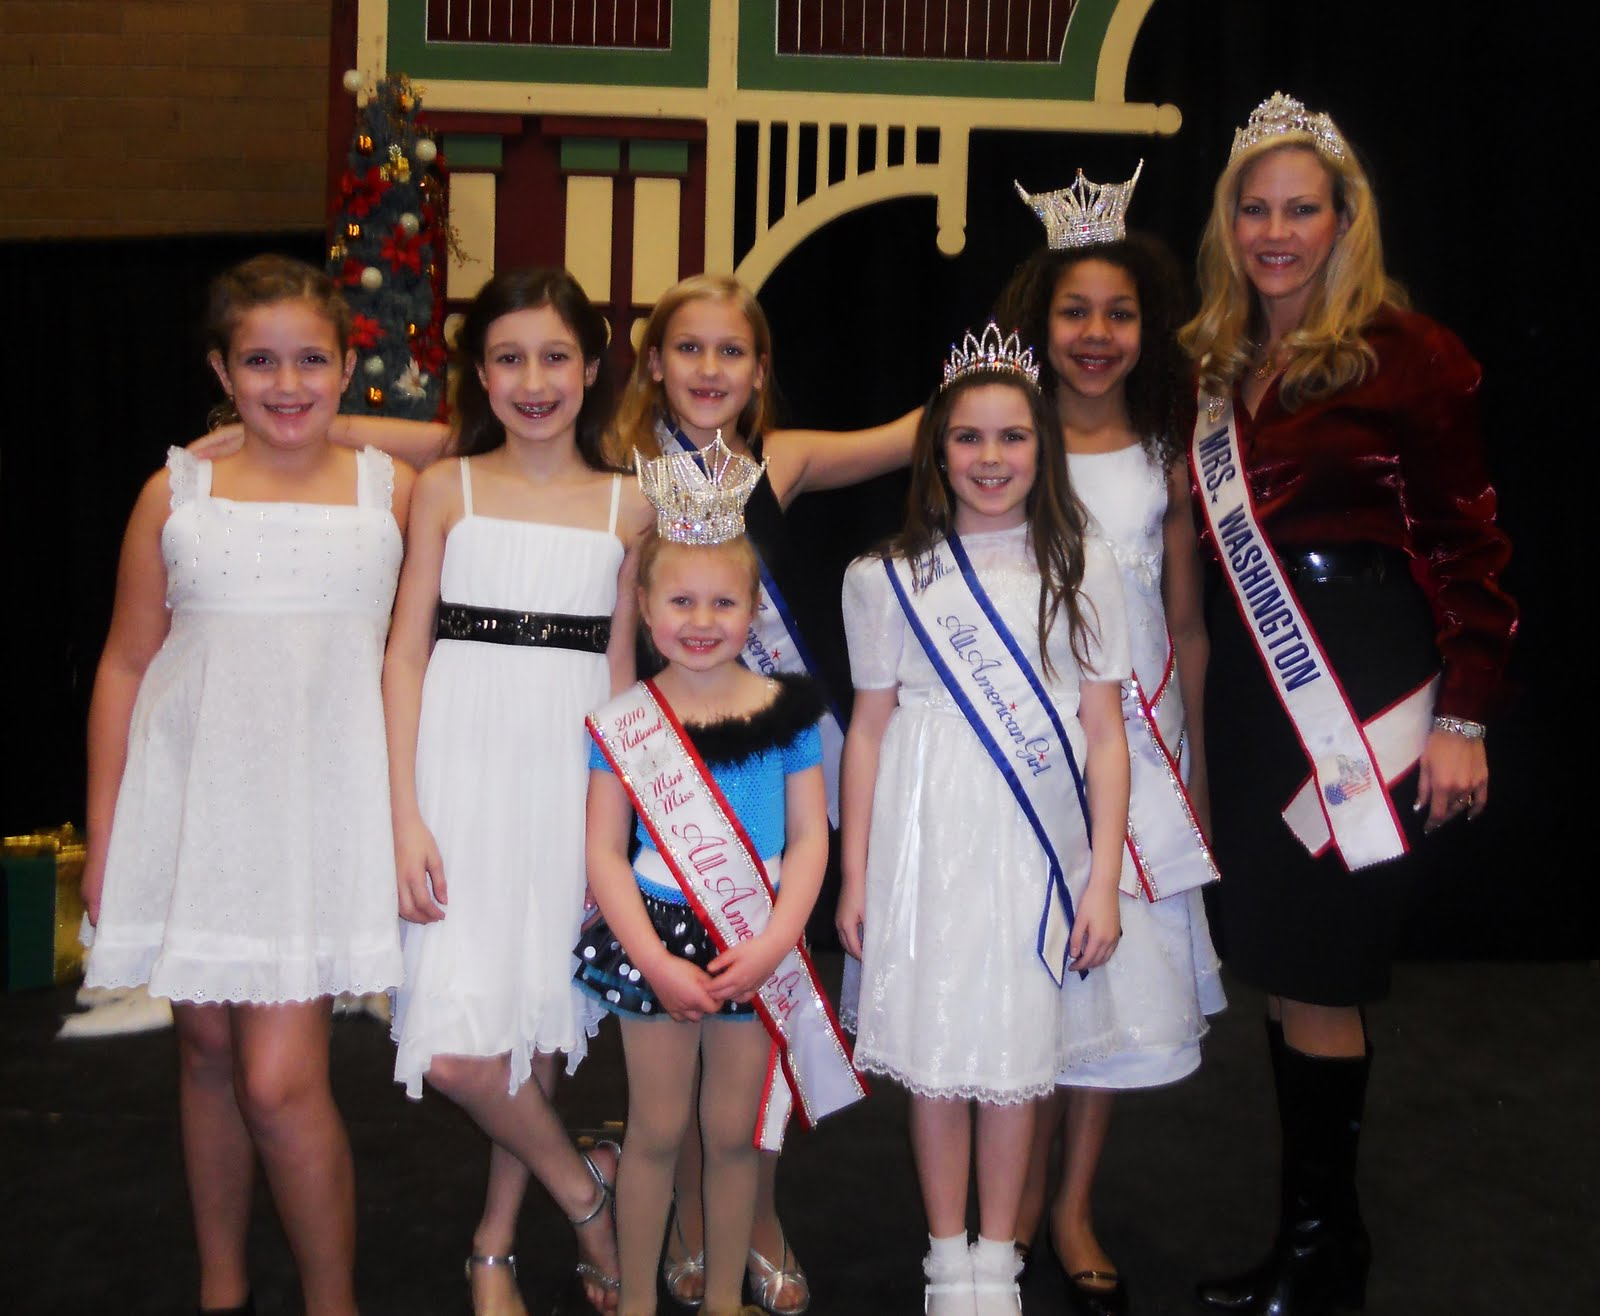 the all american girl pageant is one of the sponsors of victorian country christmas an amazing celebration of the christmas season showcasing hundreds of